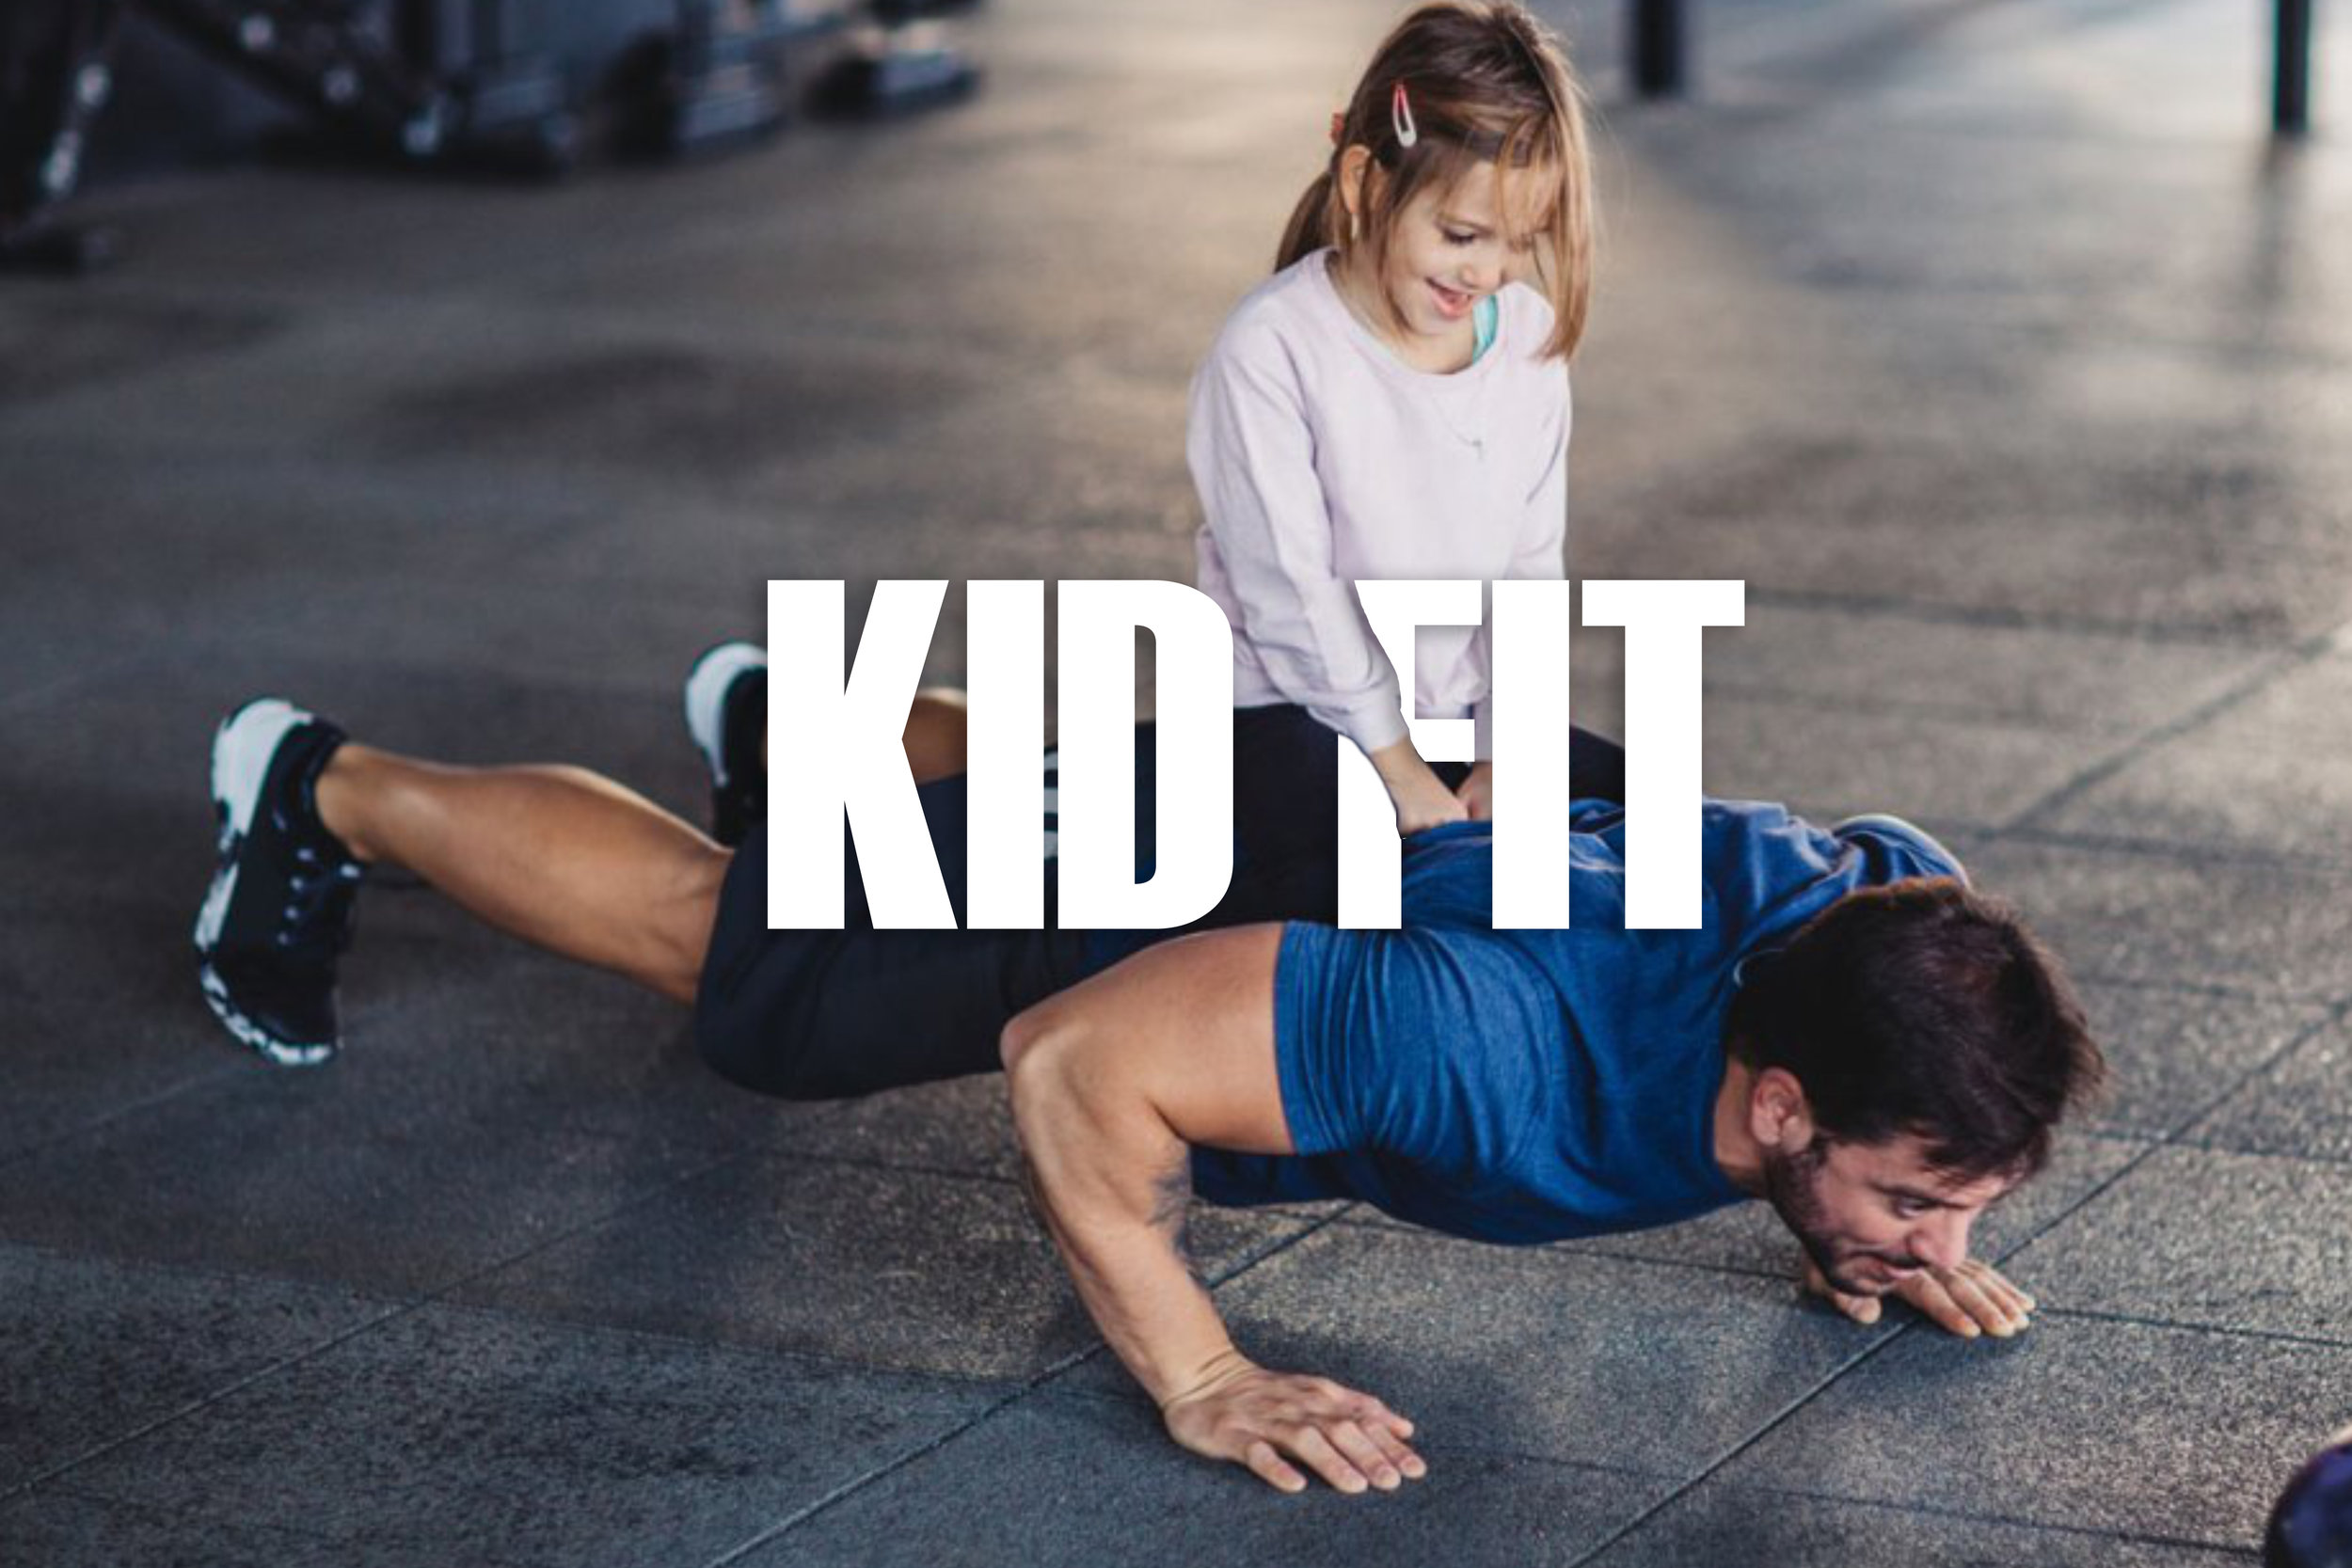 Kid Fit - *Pop-Up Class Scheduled on Occasional SaturdaysKid Fit instills healthy habits in children ages 5-13 through fun fitness-oriented activities. More than sports conditioning; Kid Fit teaches the importance of a completely fit lifestyle.